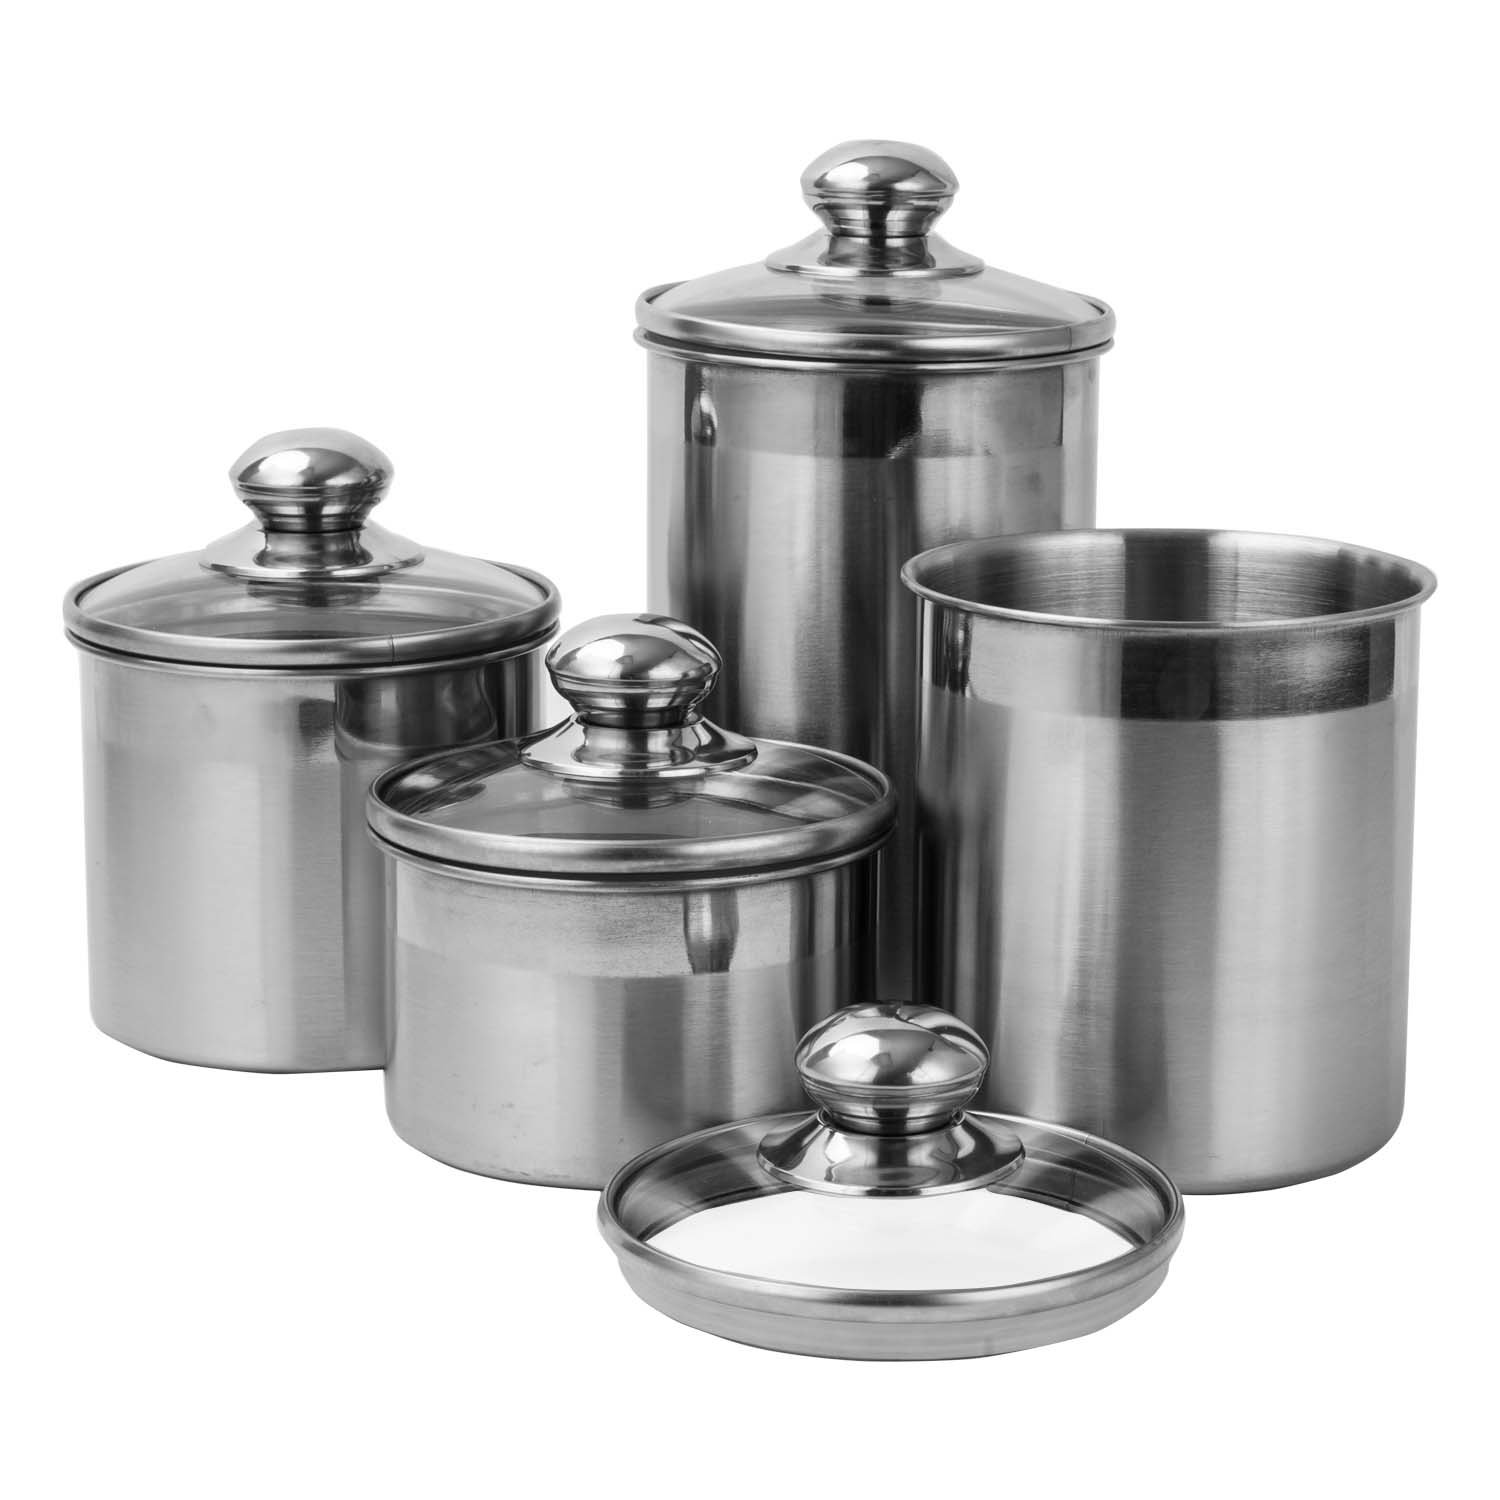 Vencer 4 Piece Stainless Steel Canister Set with Glass Lids,Tea Coffee Sugar Canister for Kitchen Counter,VFO-001